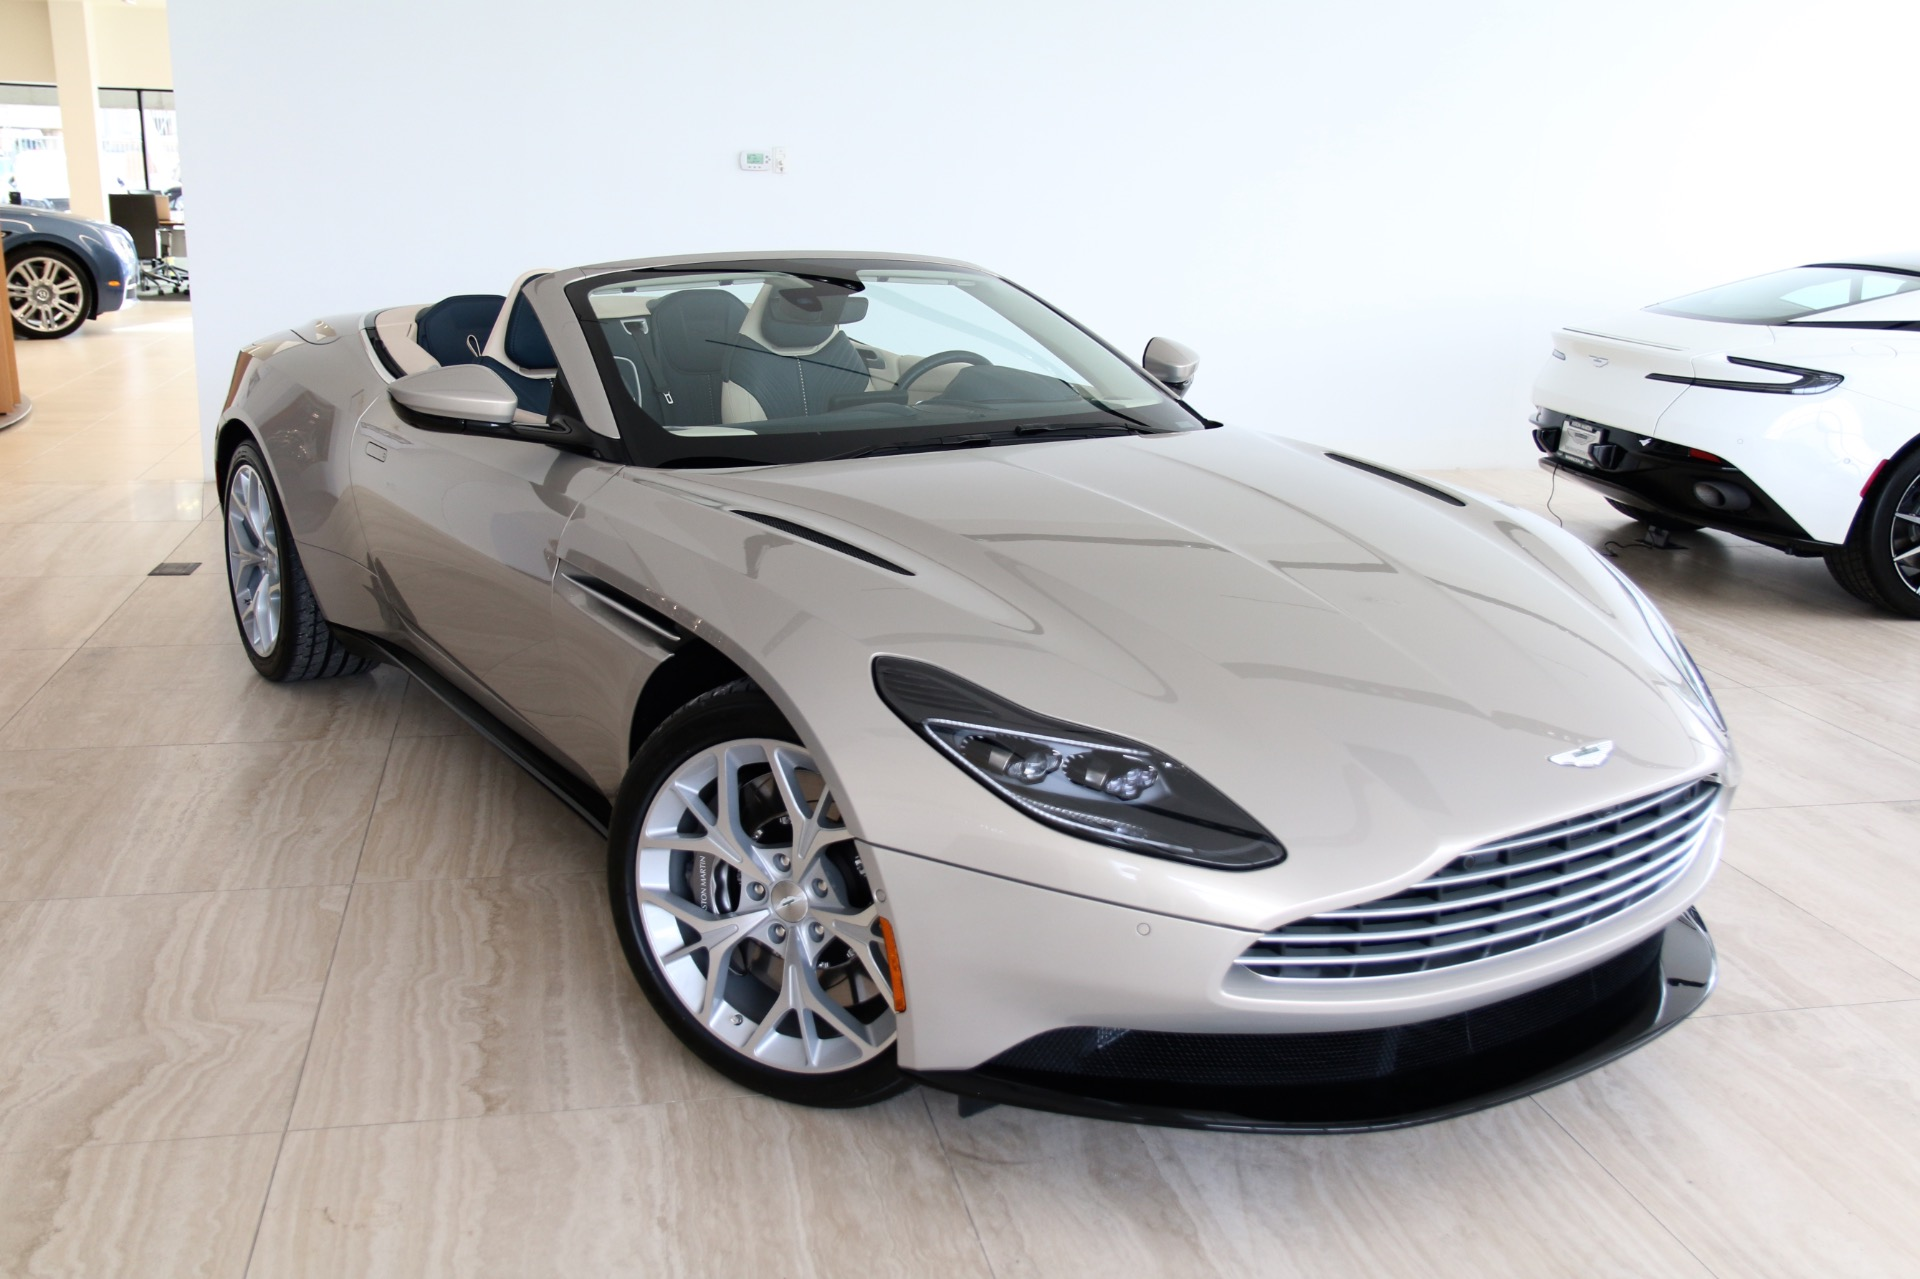 2019 aston martin db11 v8 volante [call to order] stock # 9nx82136